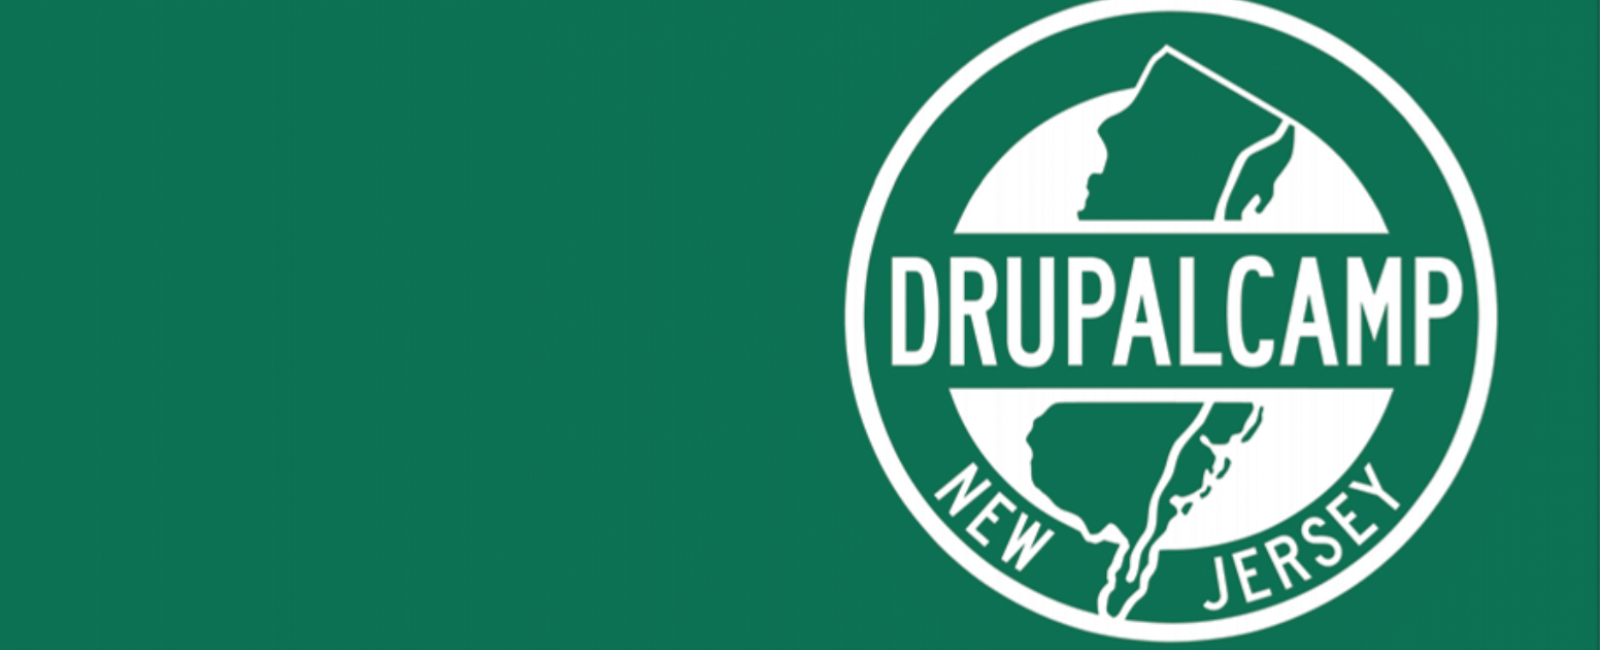 DrupalCamp NJ logo